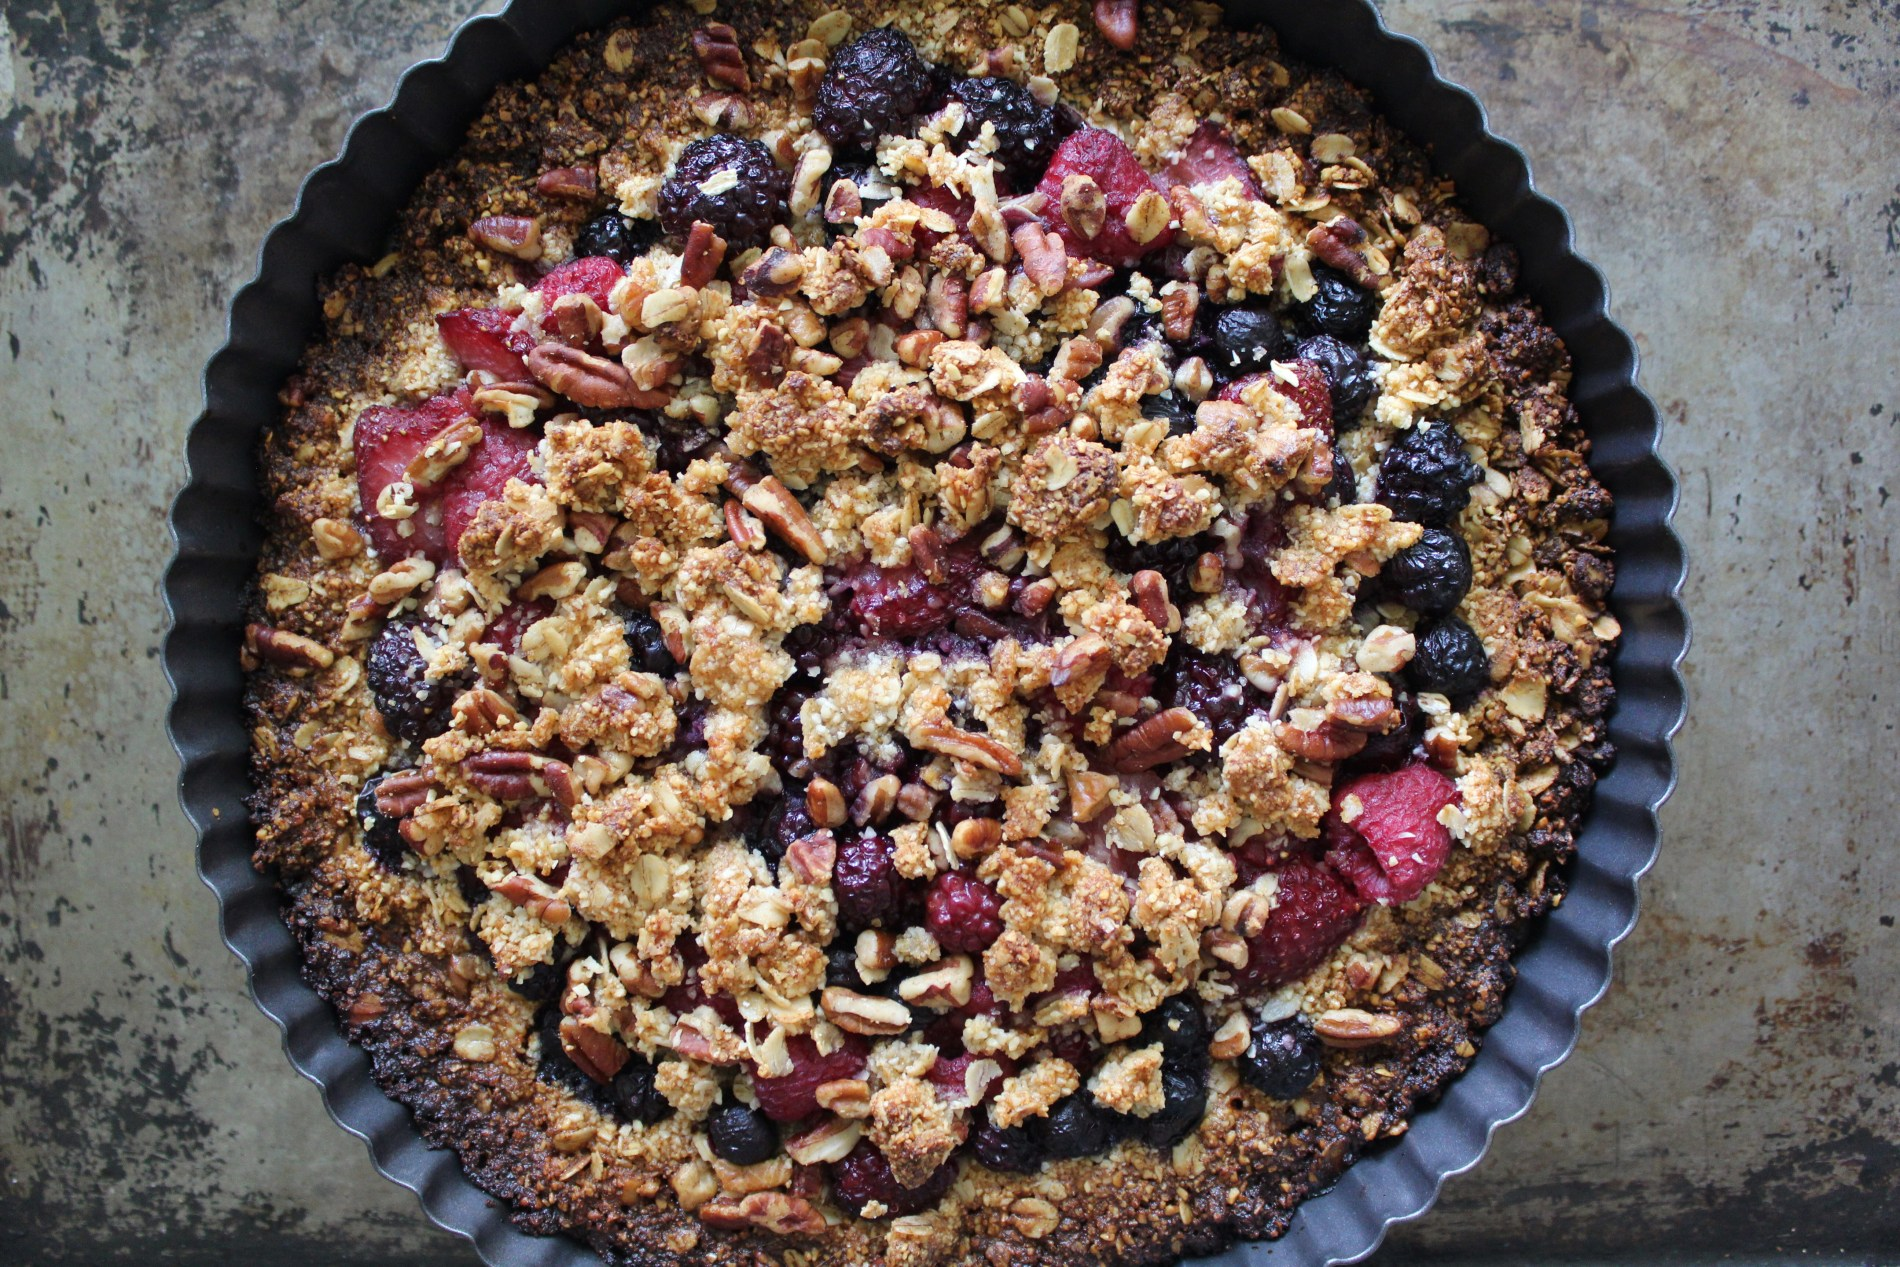 Reversible Crumbleberry Tart